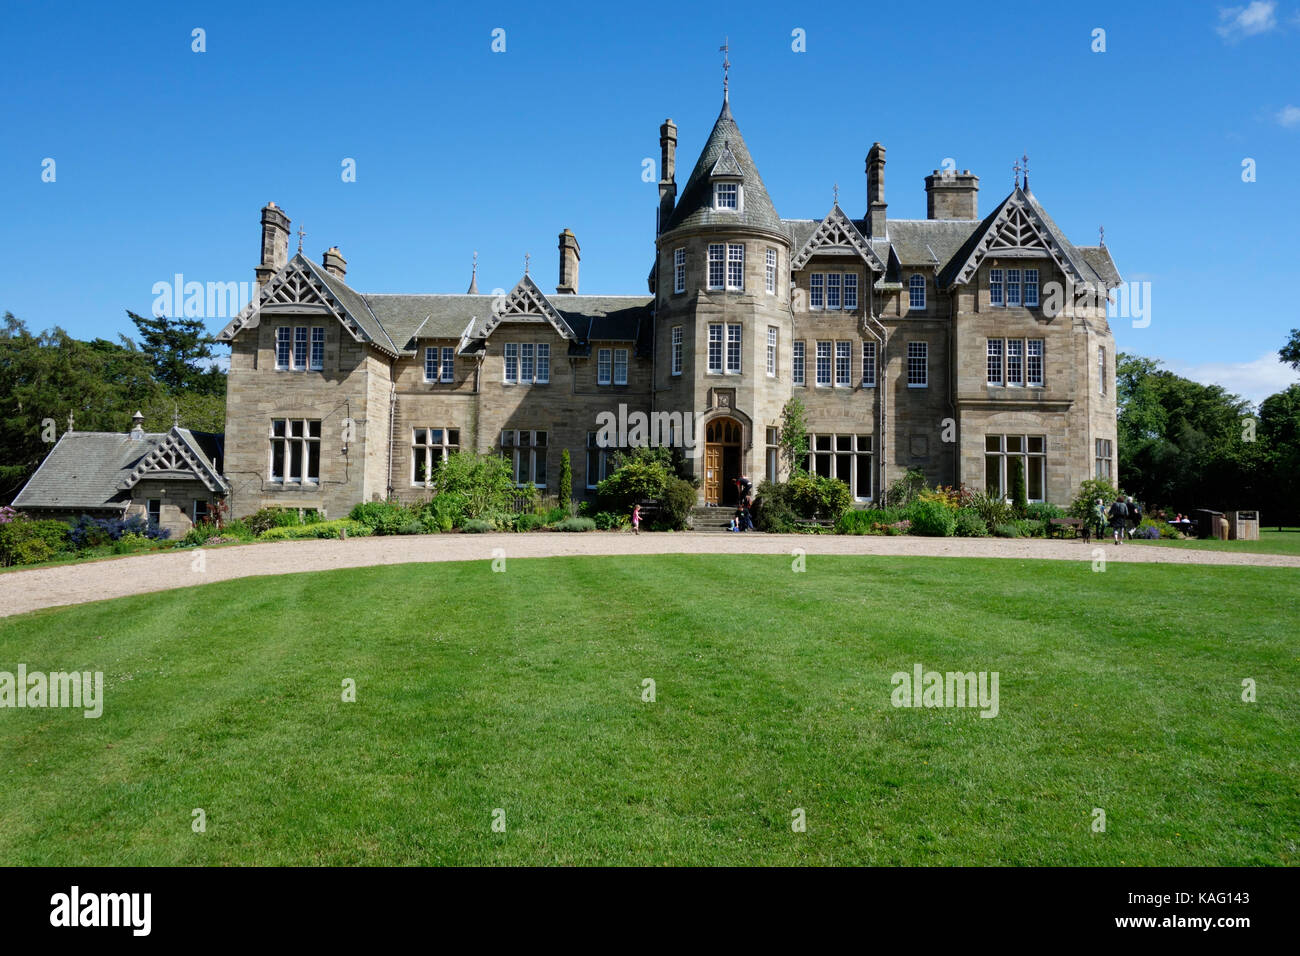 Vogrie House at Vogrie Country Park - Stock Image